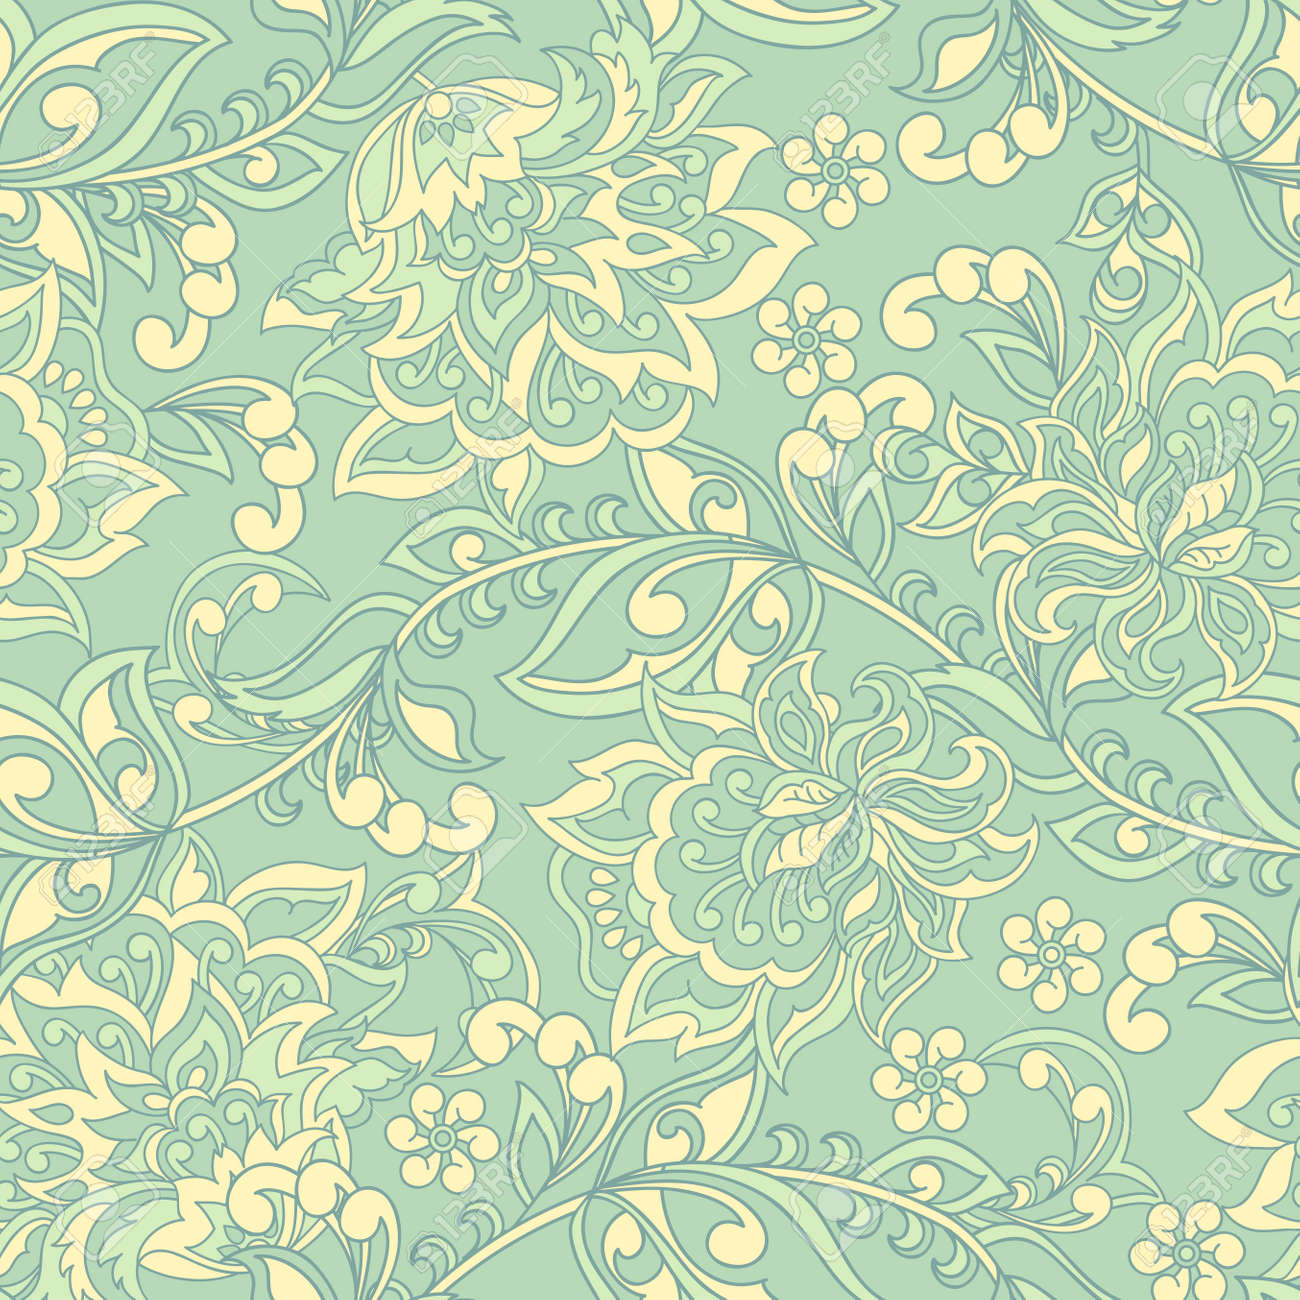 Damask Seamless Pattern Floral Vintage Wallpaper Royalty Free